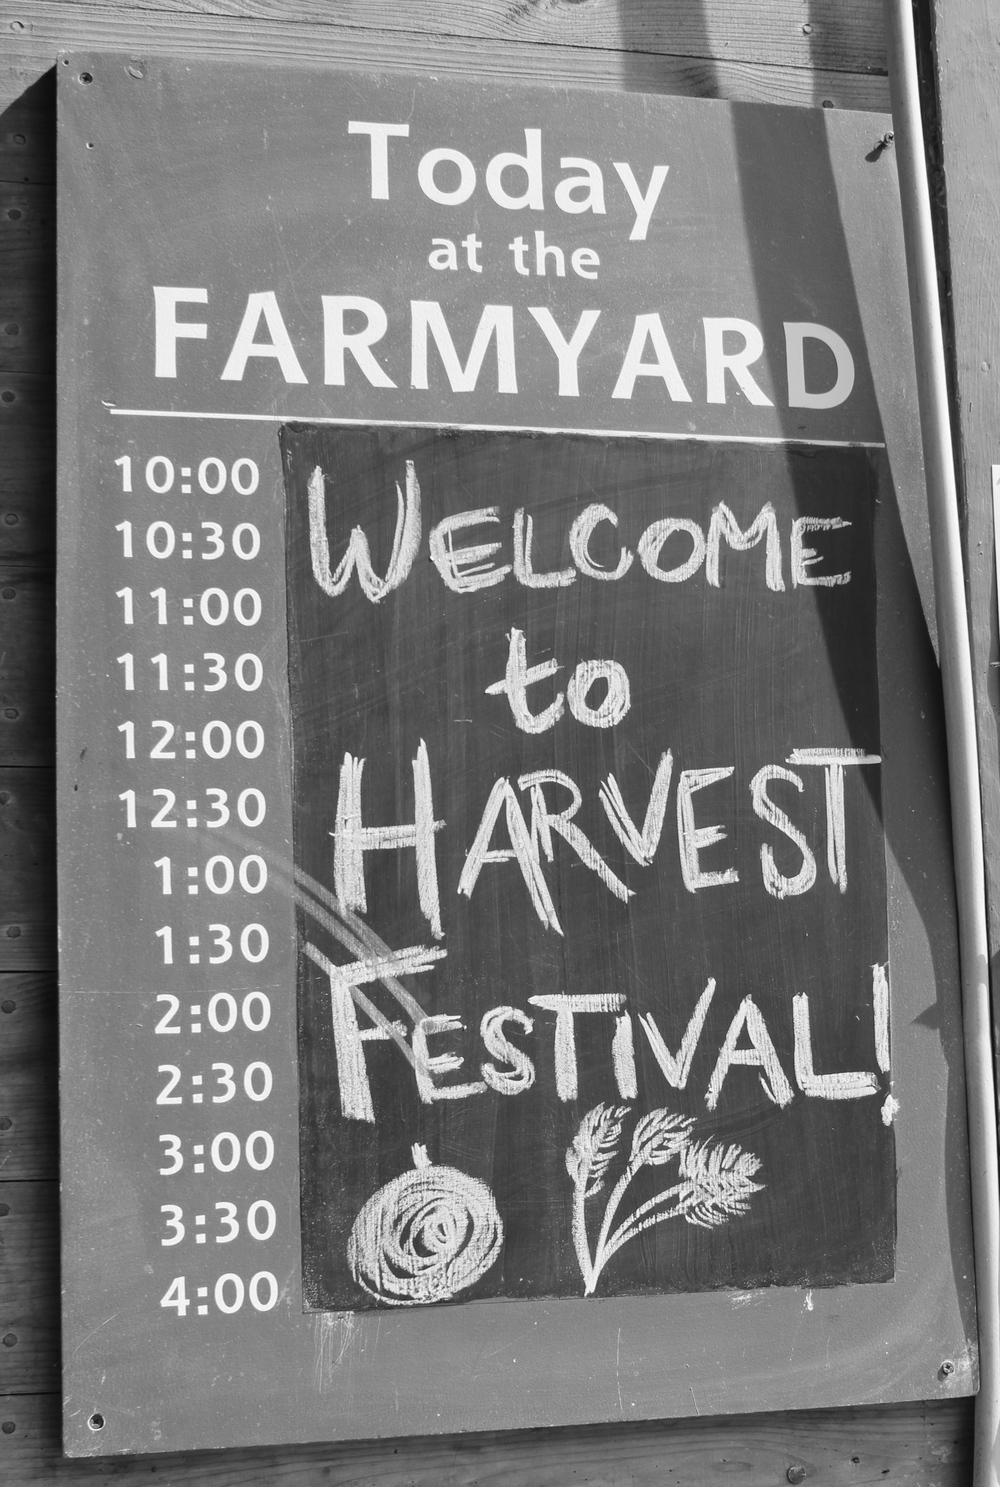 All day harvest celebrations!